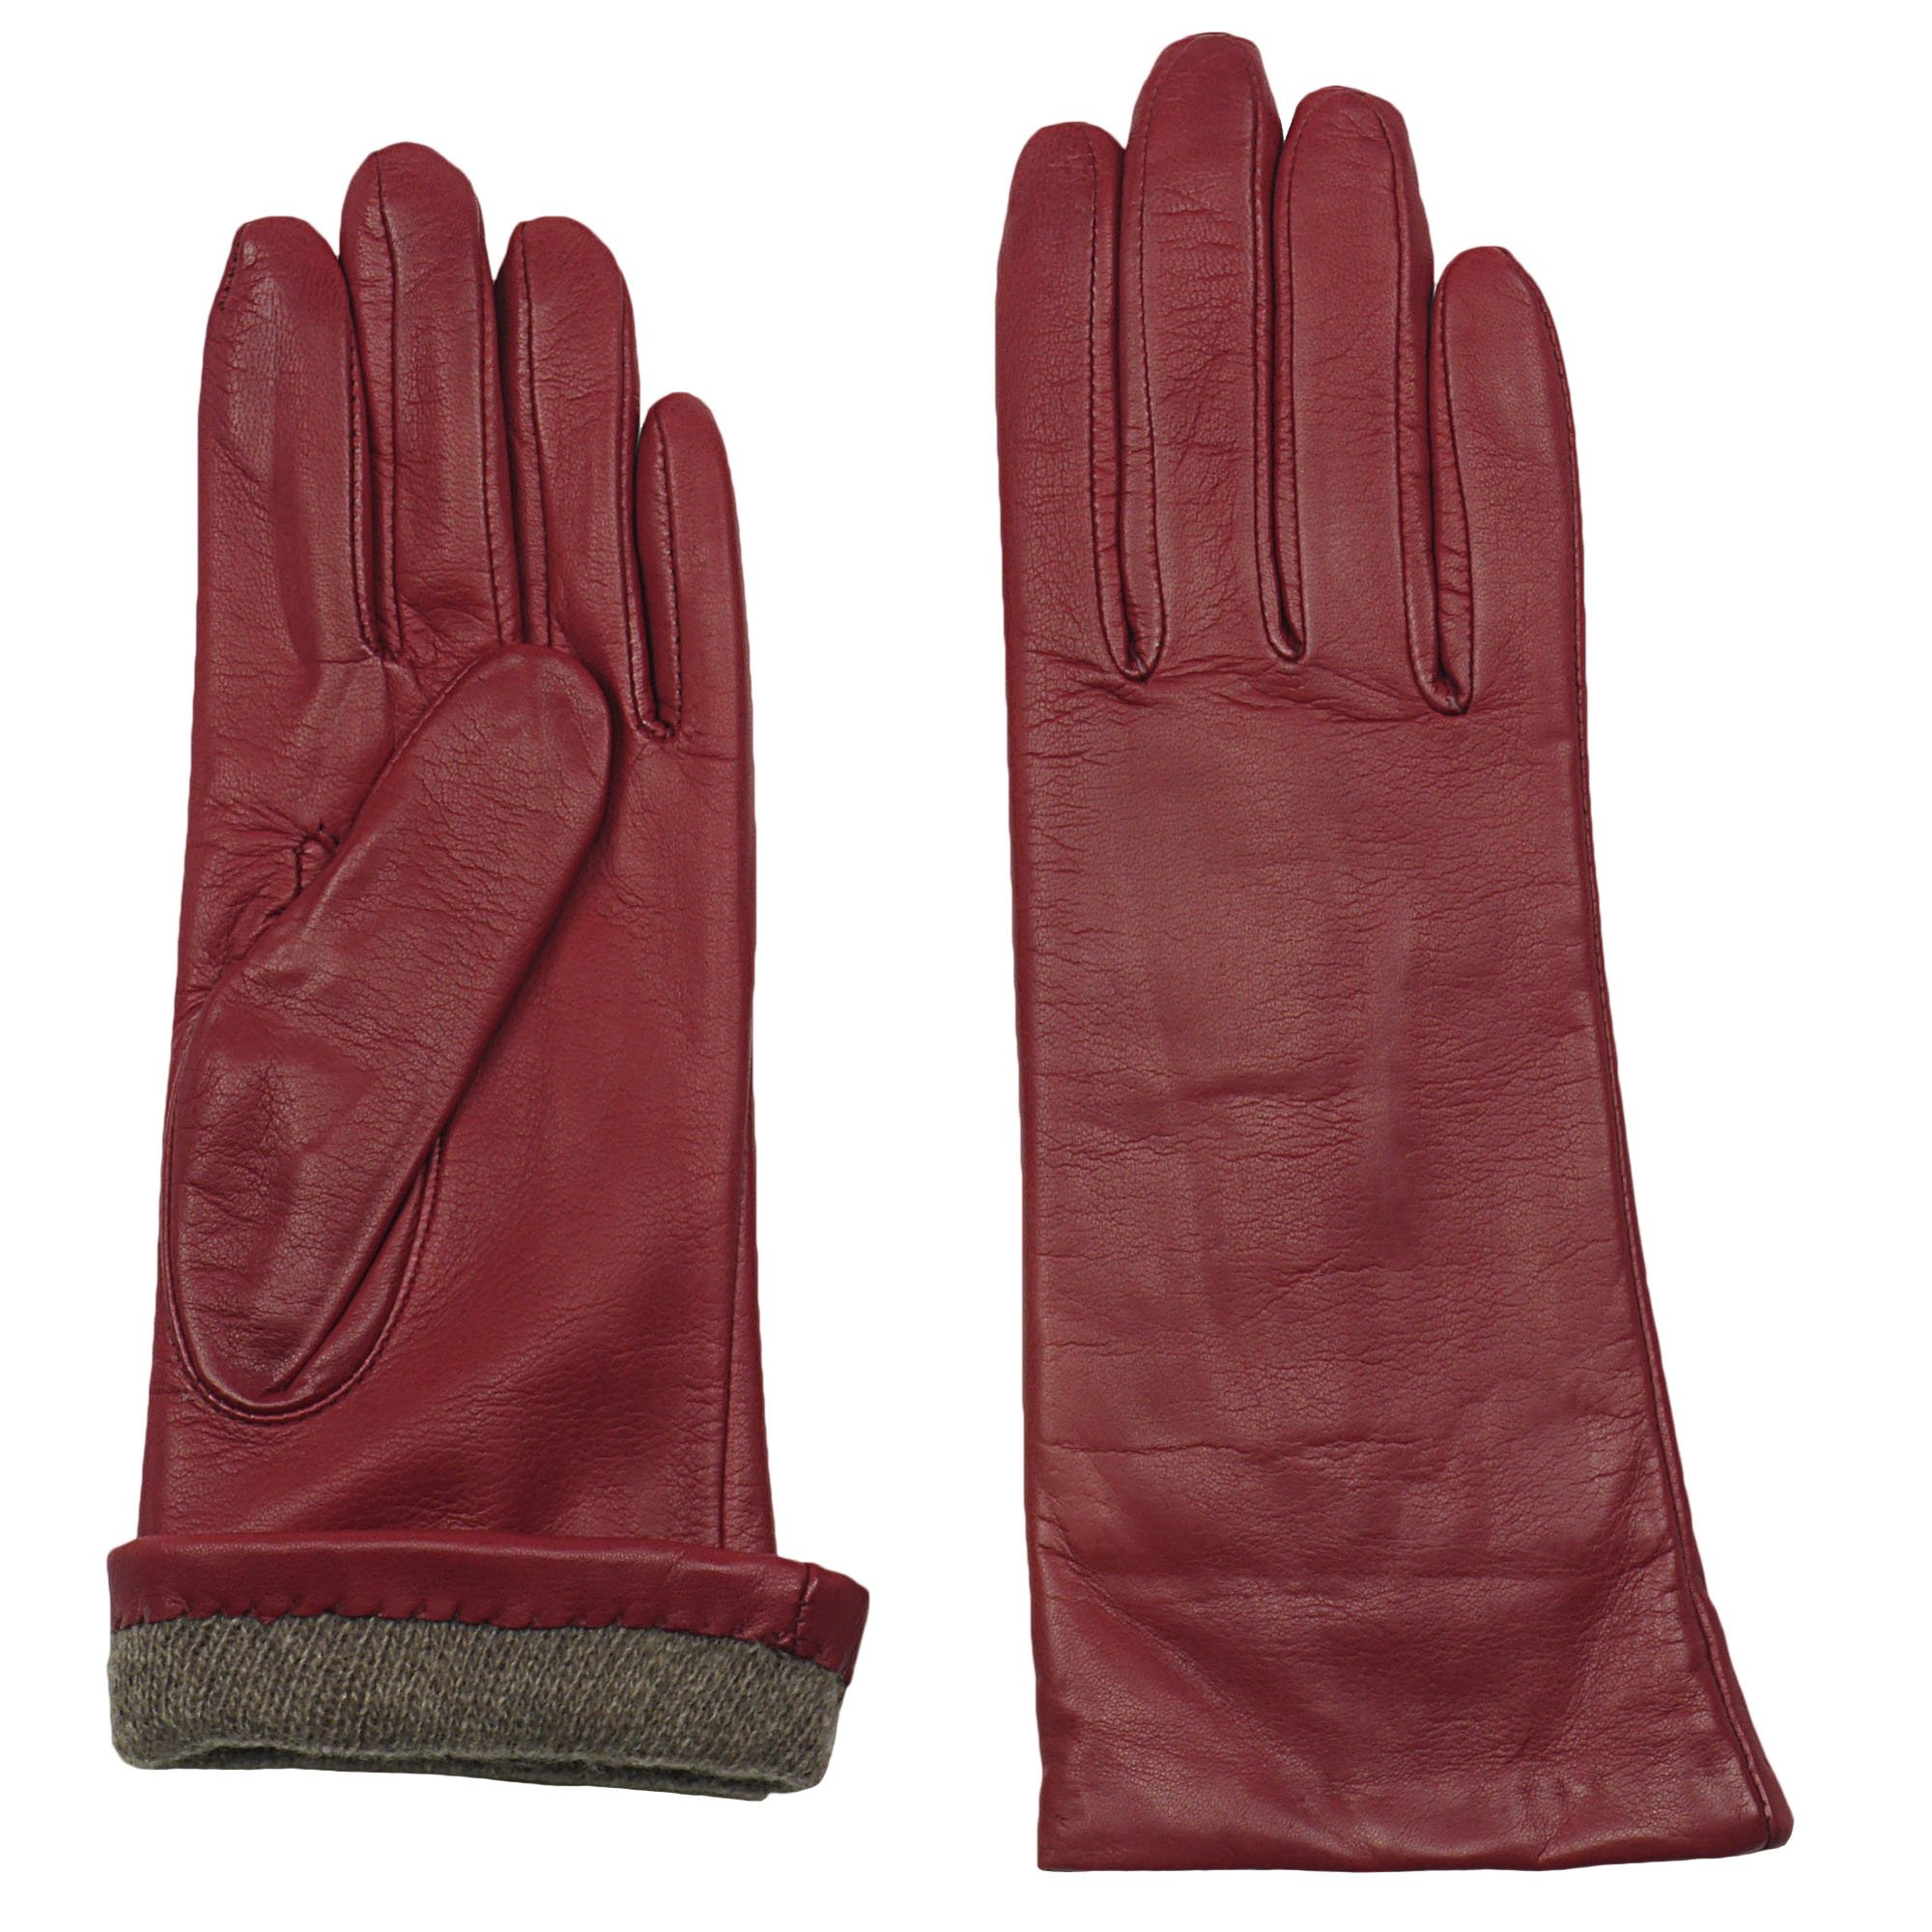 GRANDOE Women's MELODY Sheepskin Leather Glove, Warm Cashmere Lined 3 btn length (Red, X-Large)